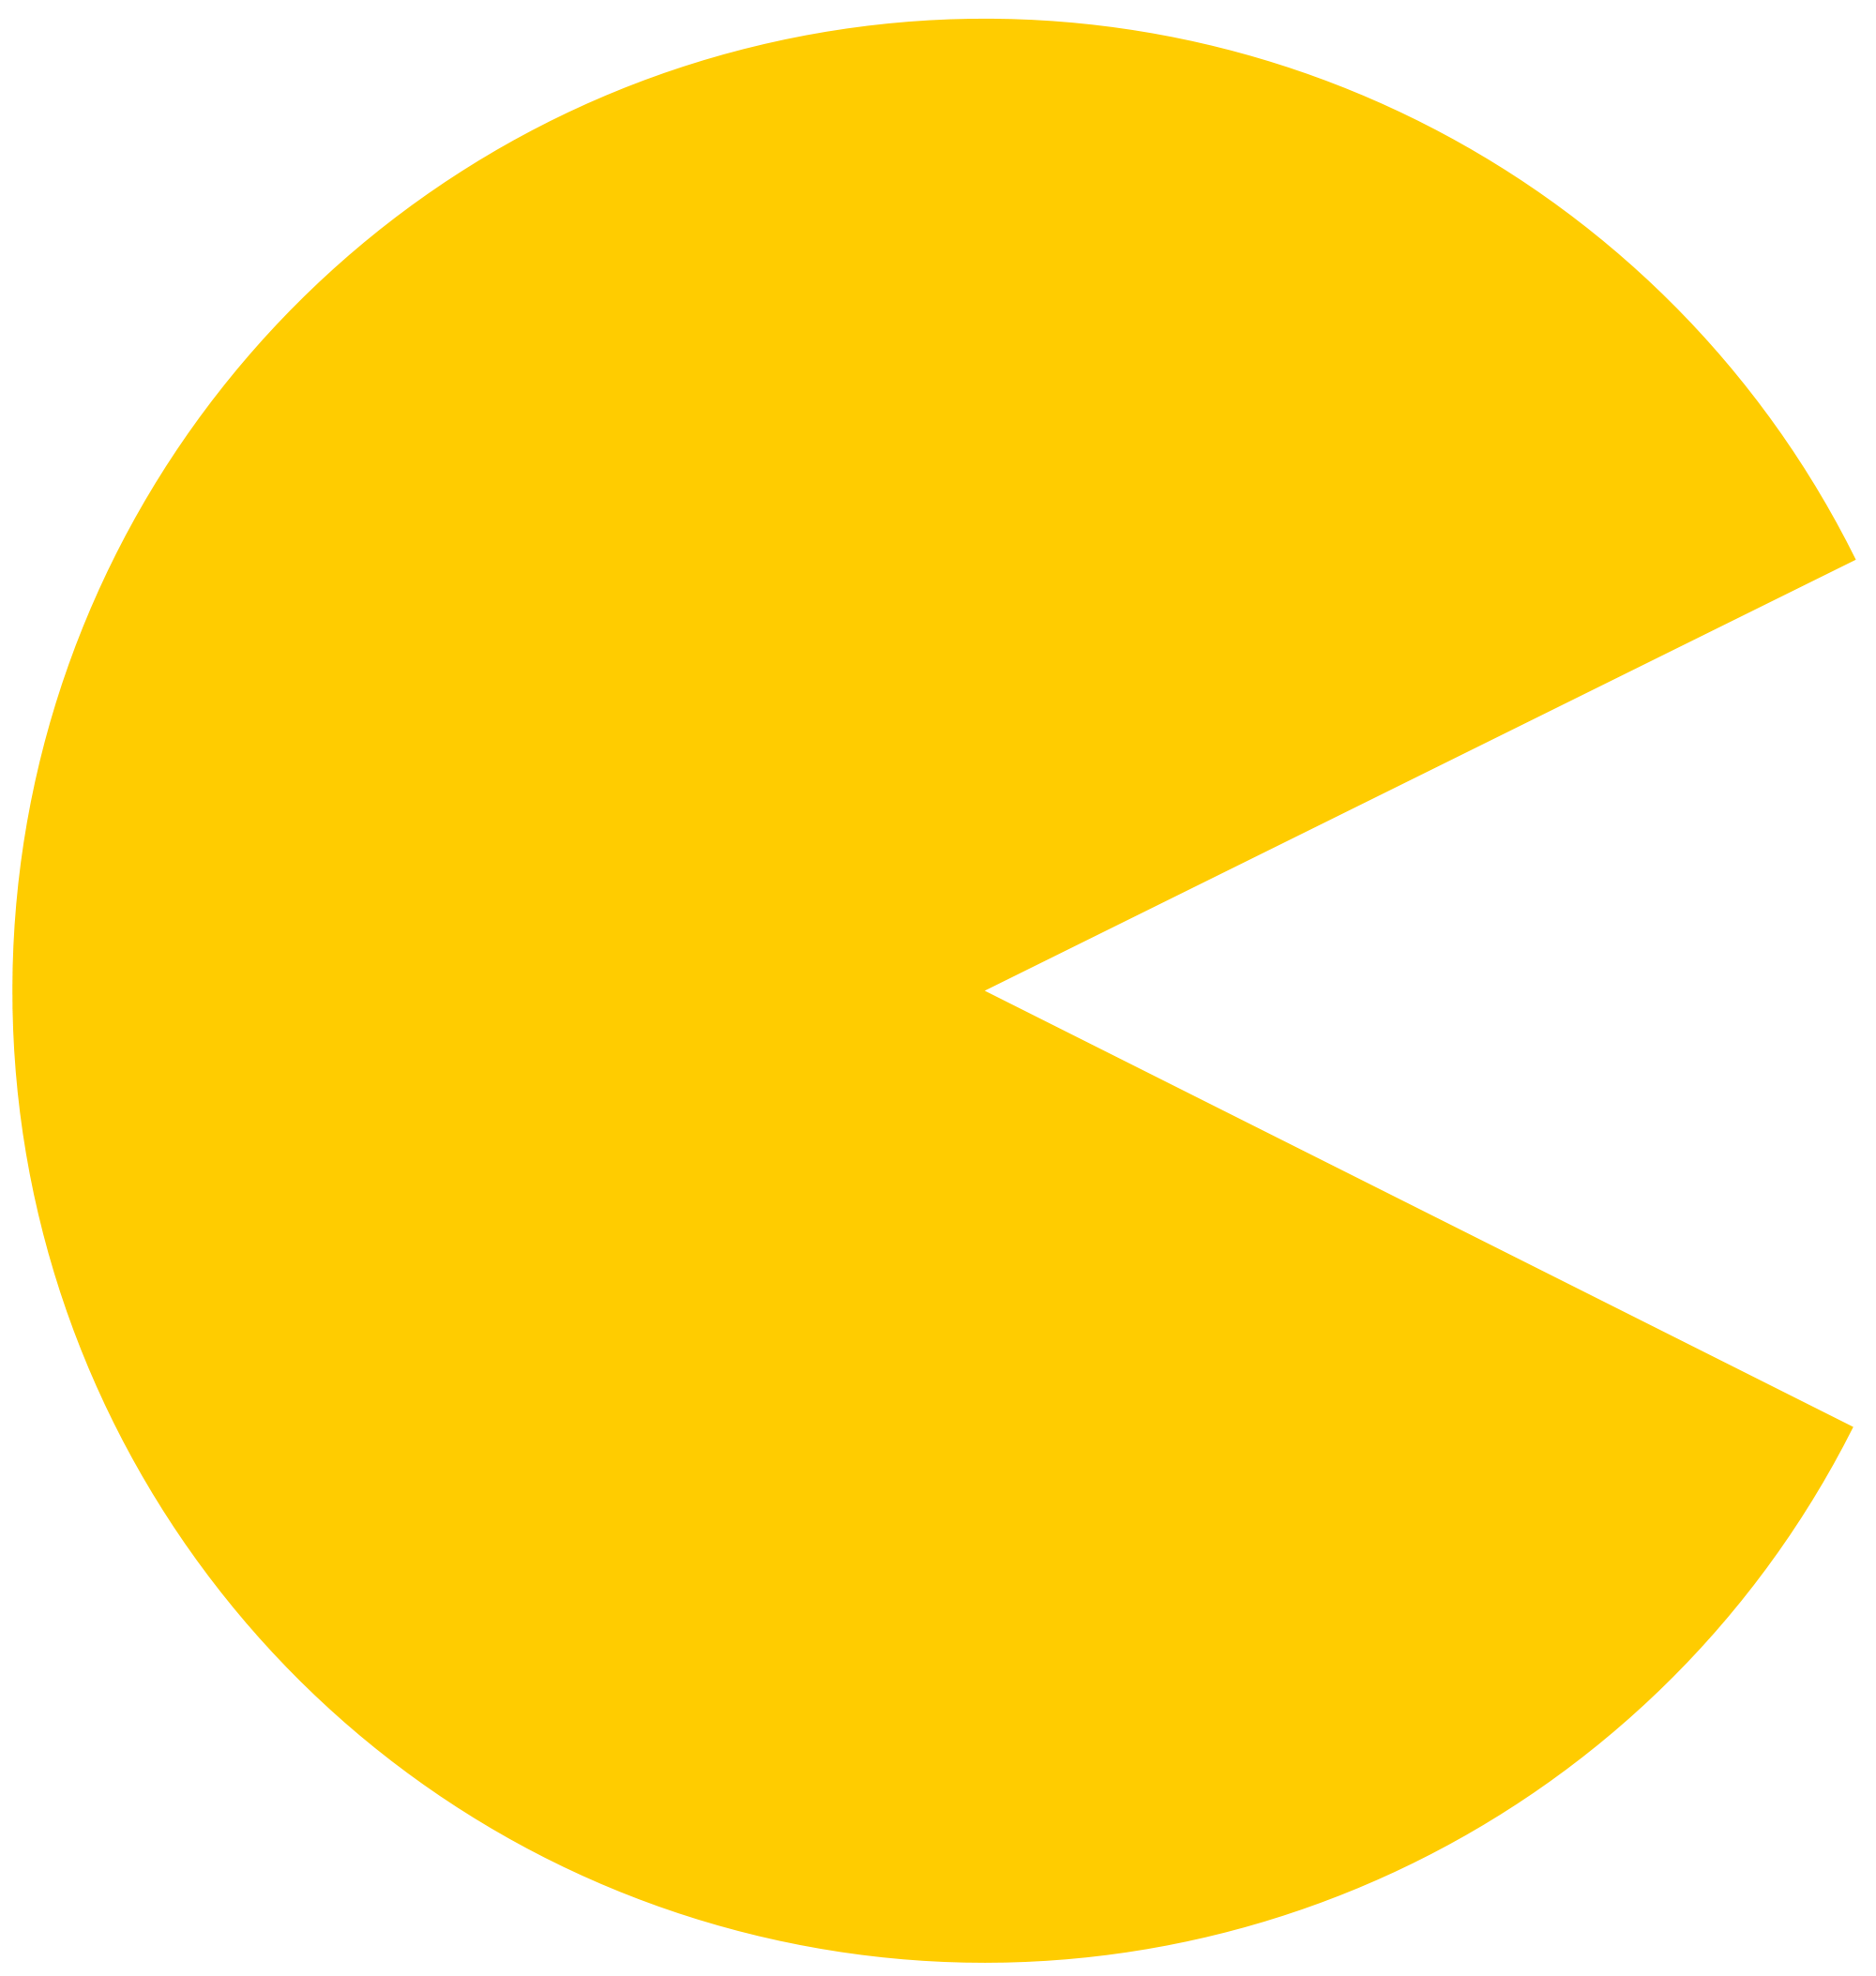 Pacman clipart. Pac man plain yellow